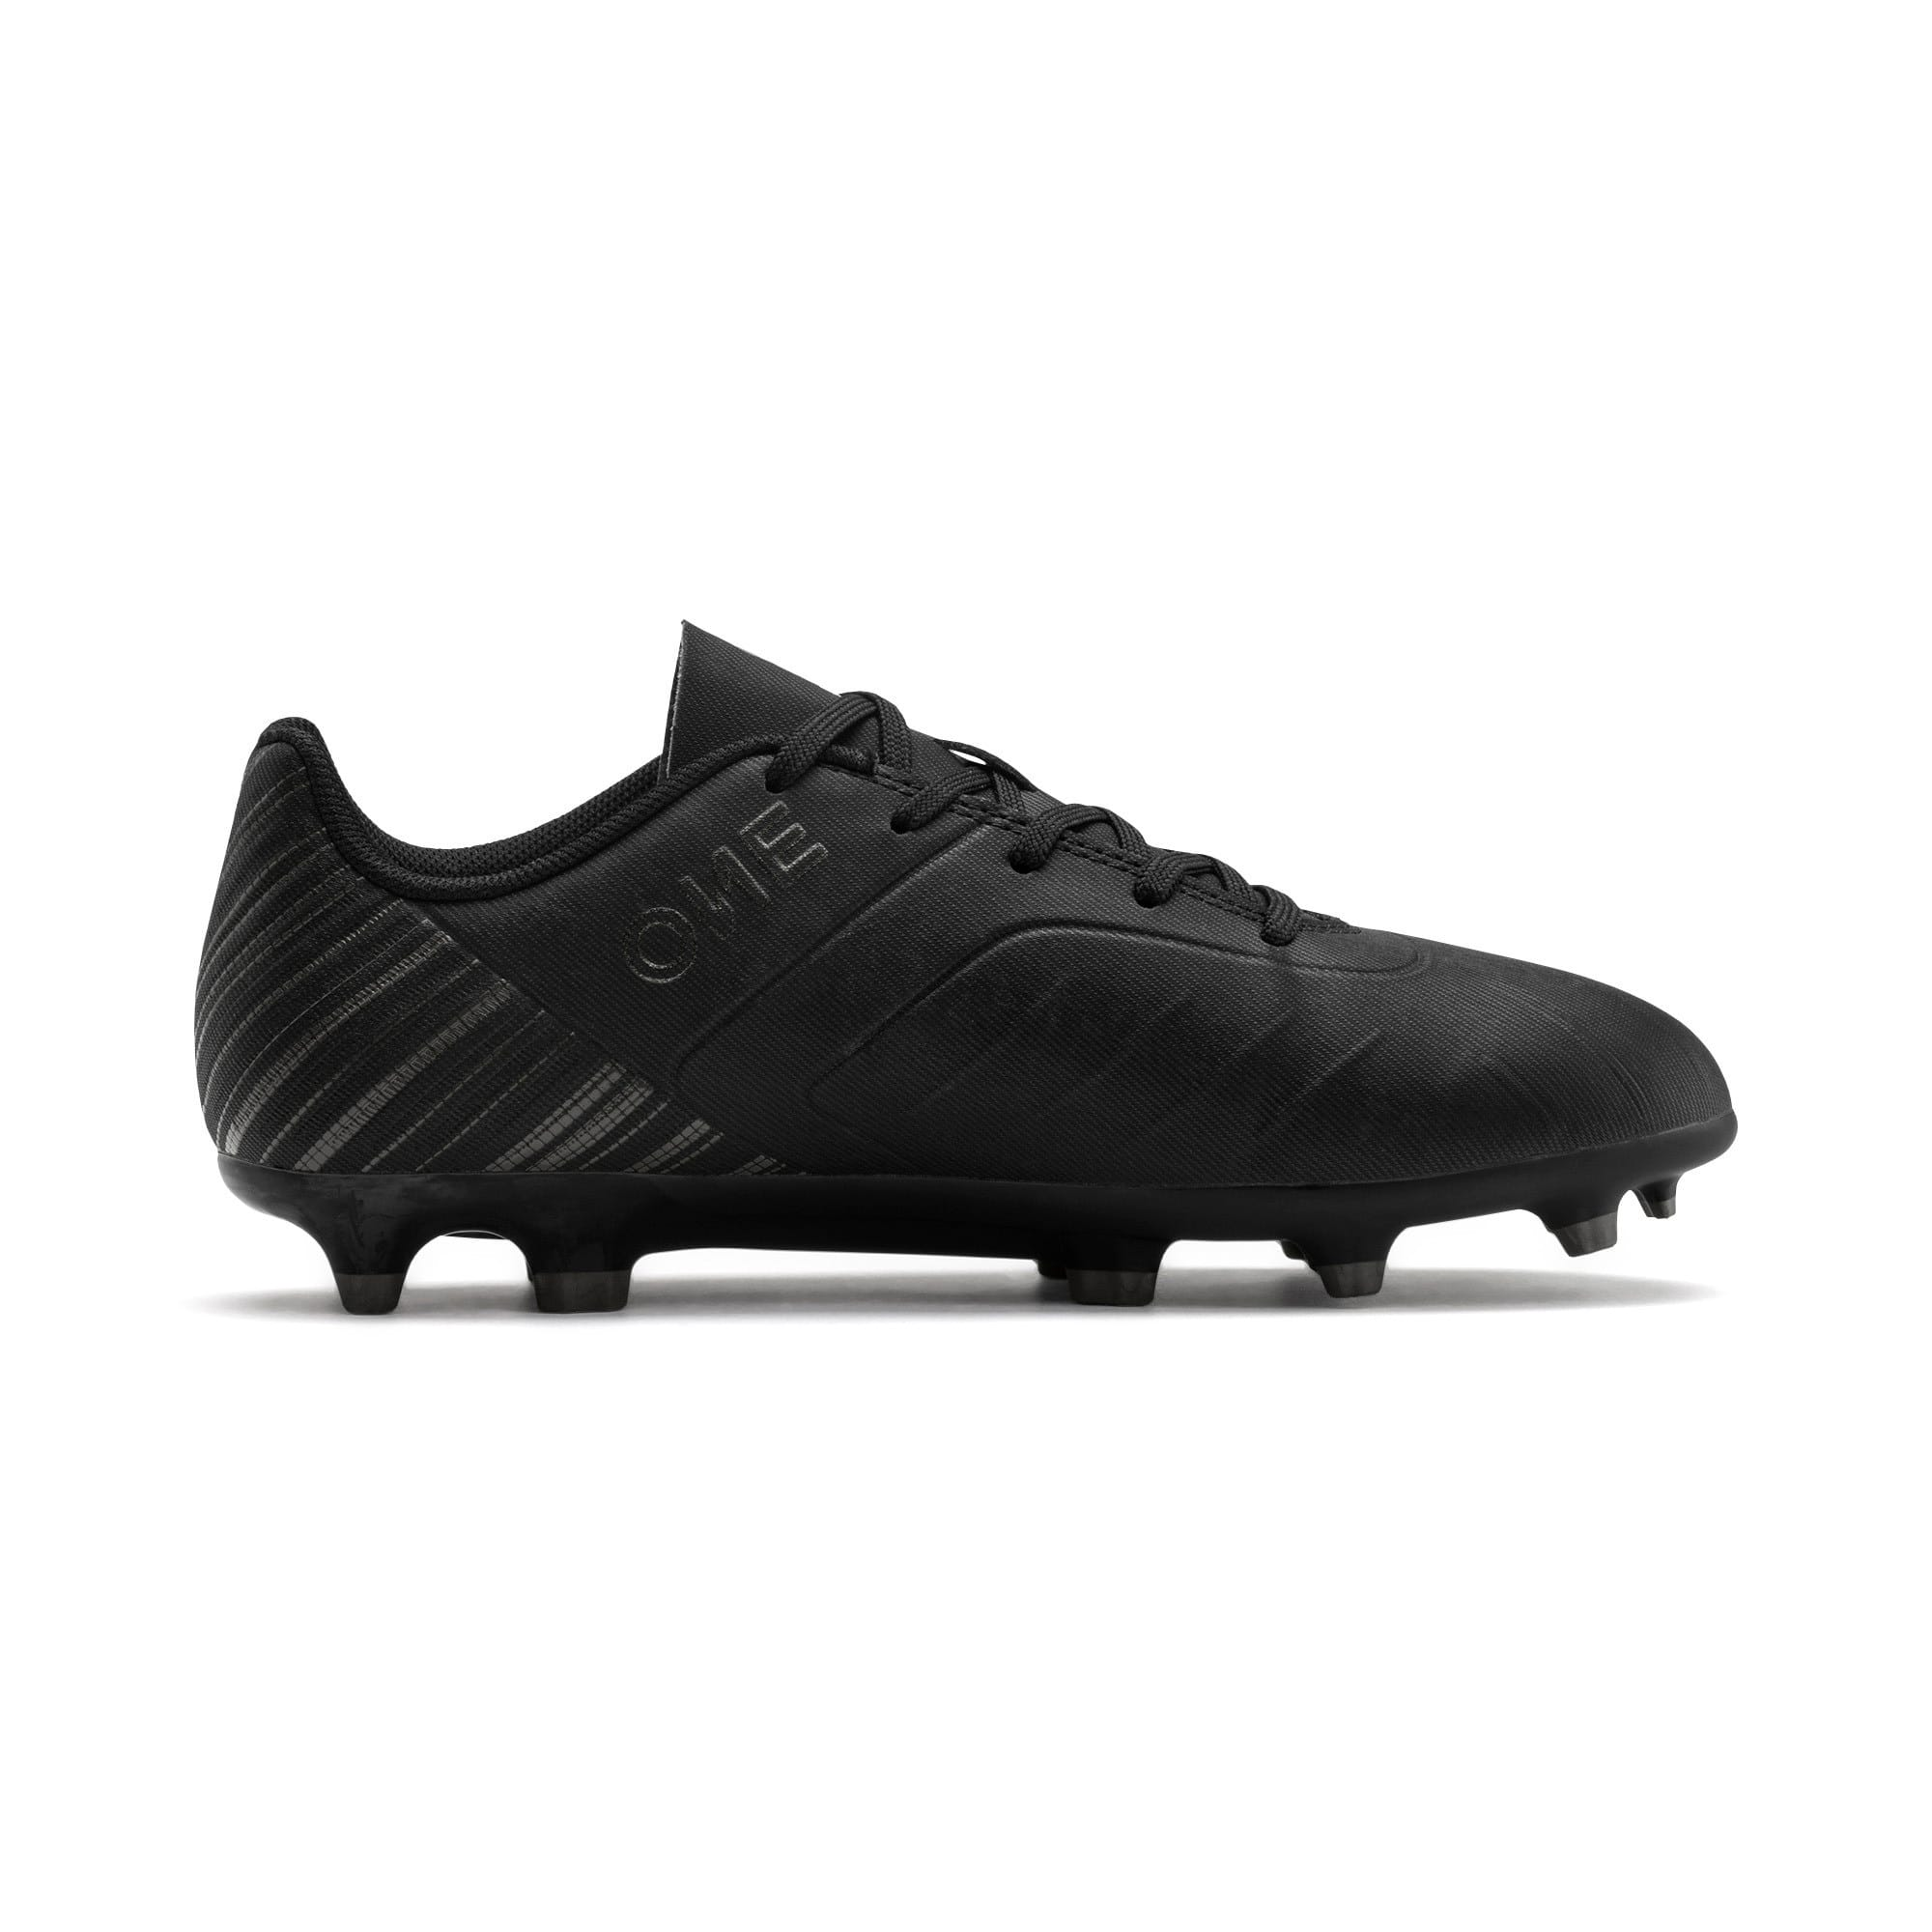 Thumbnail 5 of PUMA ONE 5.4 FG/AG Youth Fußballschuhe, Black-Black-Puma Aged Silver, medium